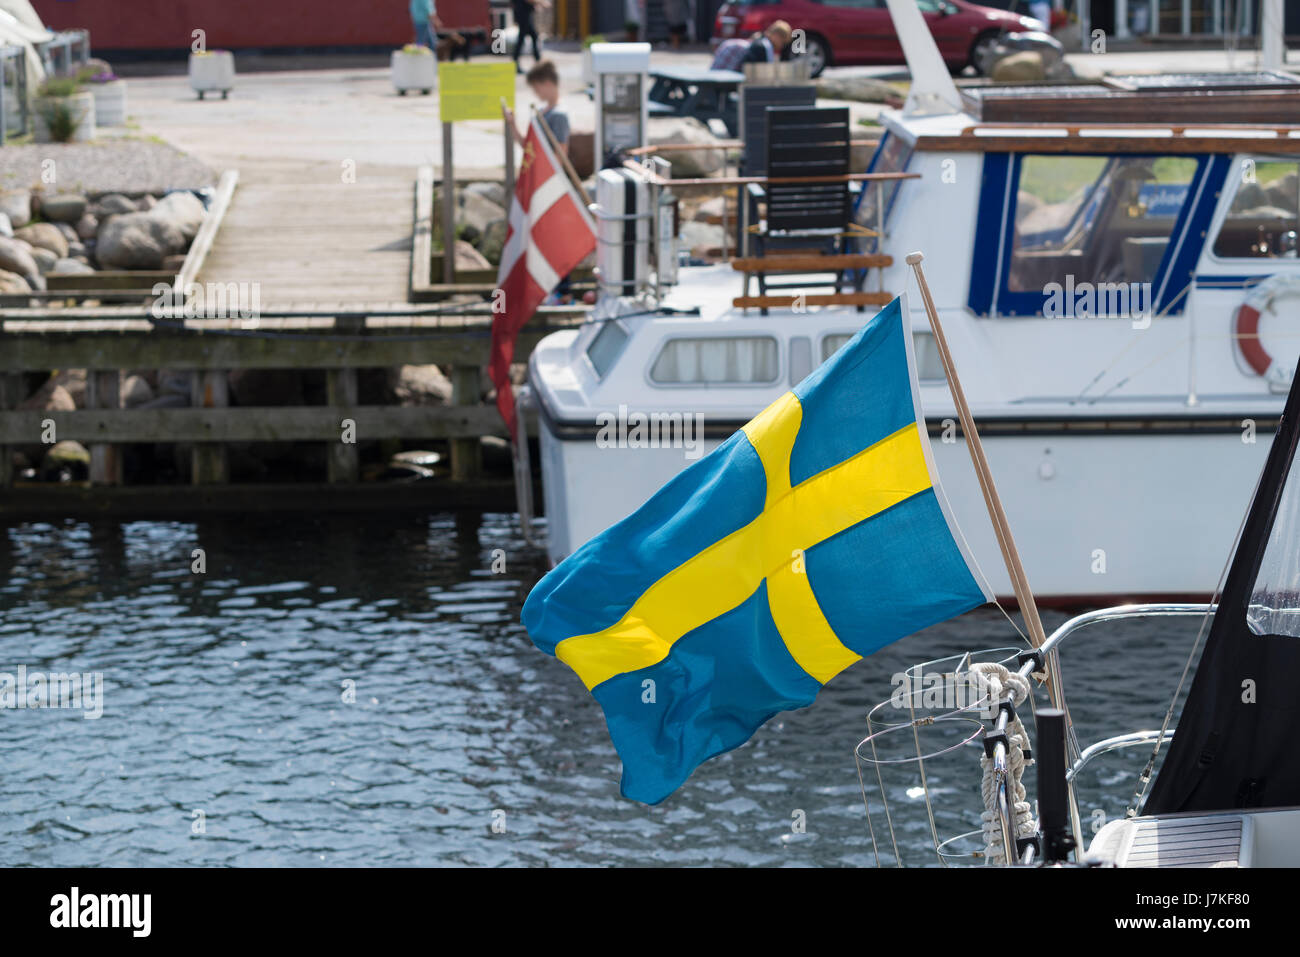 small swedish flag on a yacht in the Hundested harbor in Denmark - Stock Image